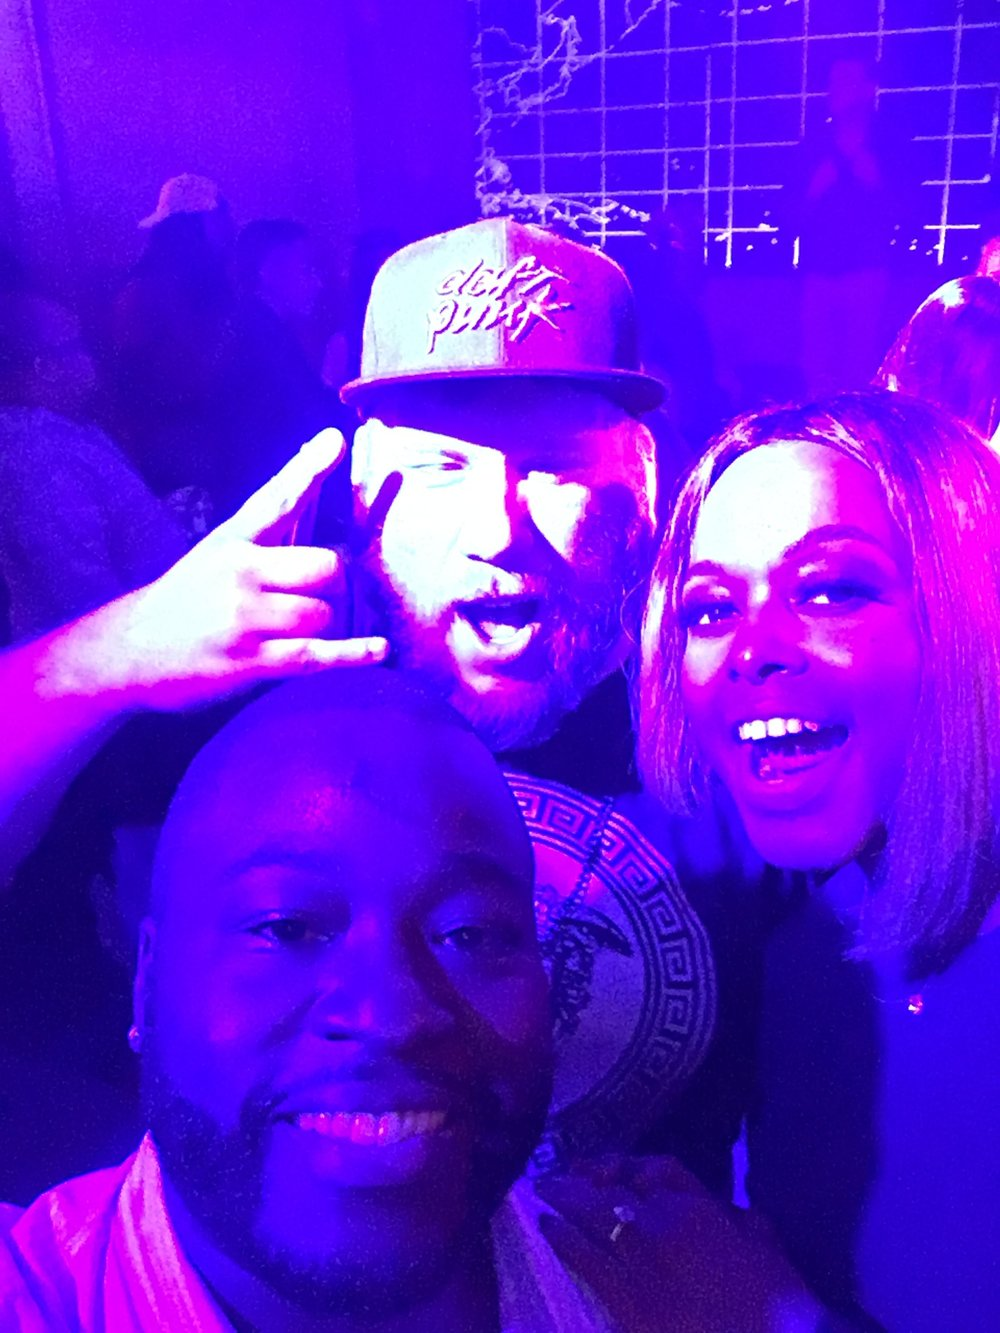 DJ PHNM was the cheeriest! The Daft Punk fitted says it all! We snapped a pic by our tables before heading to the DJ booth to meet DJ Frank White... One of the illest Bostonian DJ's around!